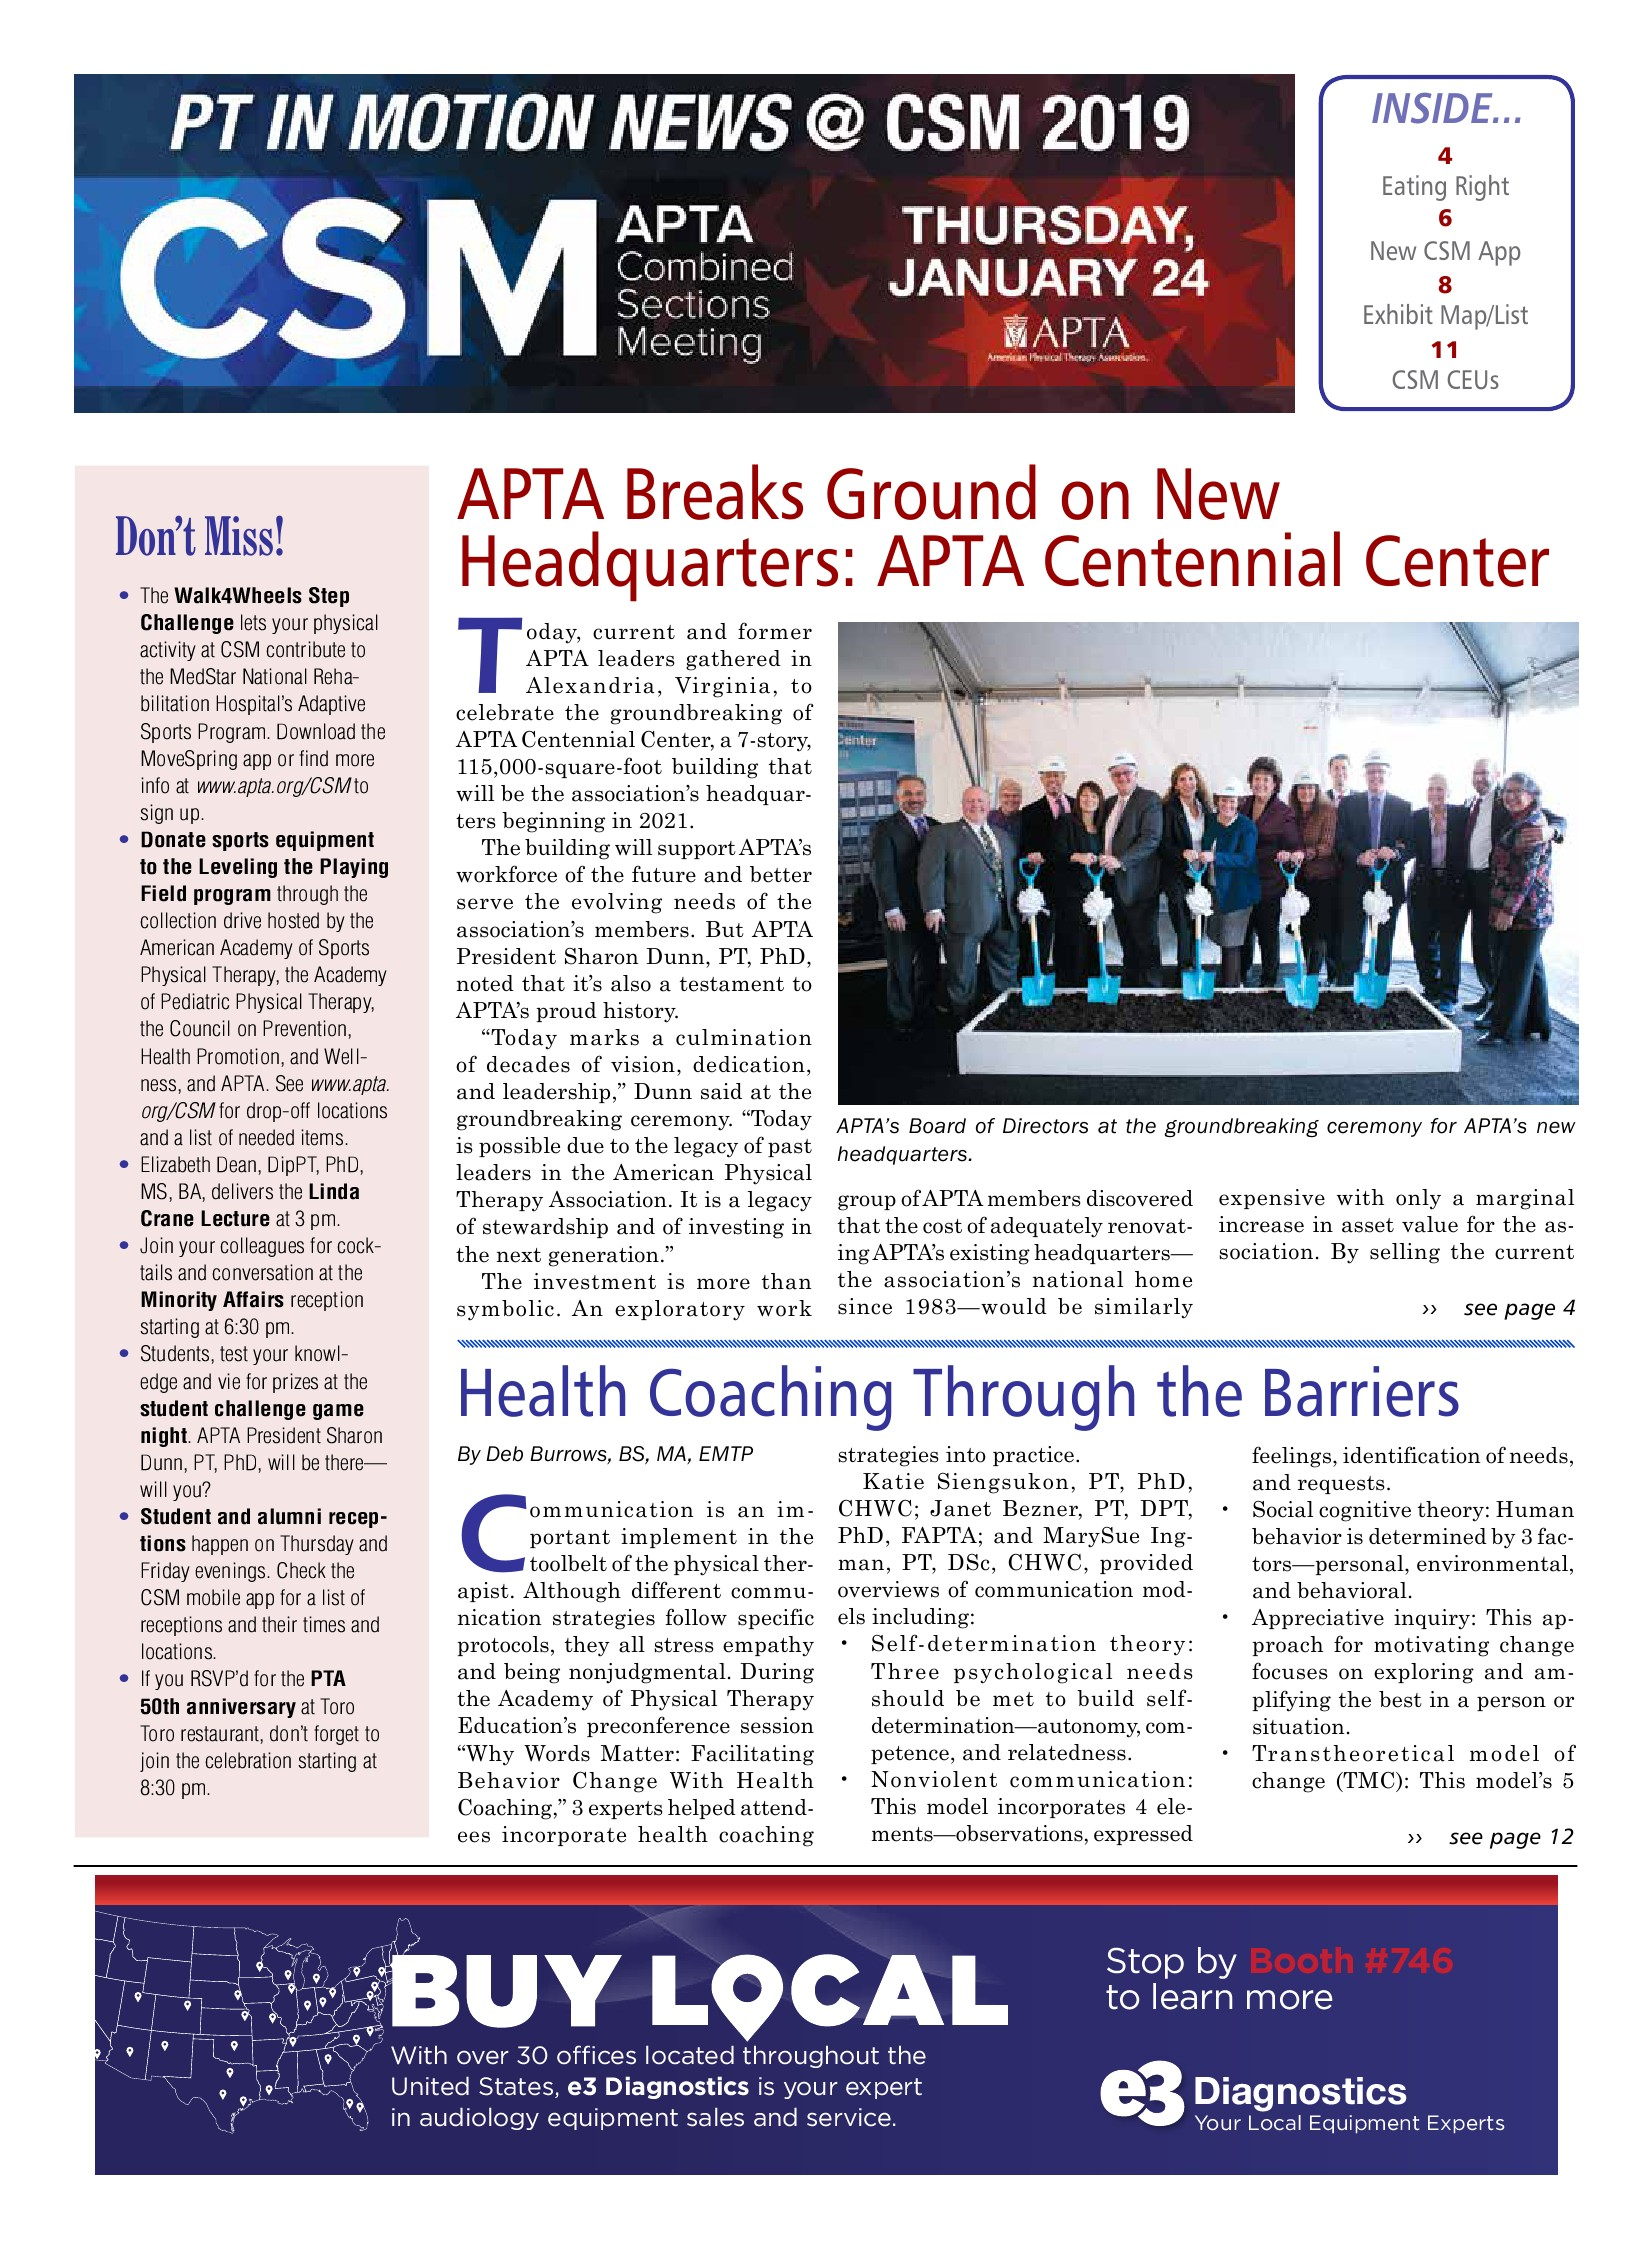 PT in Motion News CSM 2019 Thursday Issue - Powered by